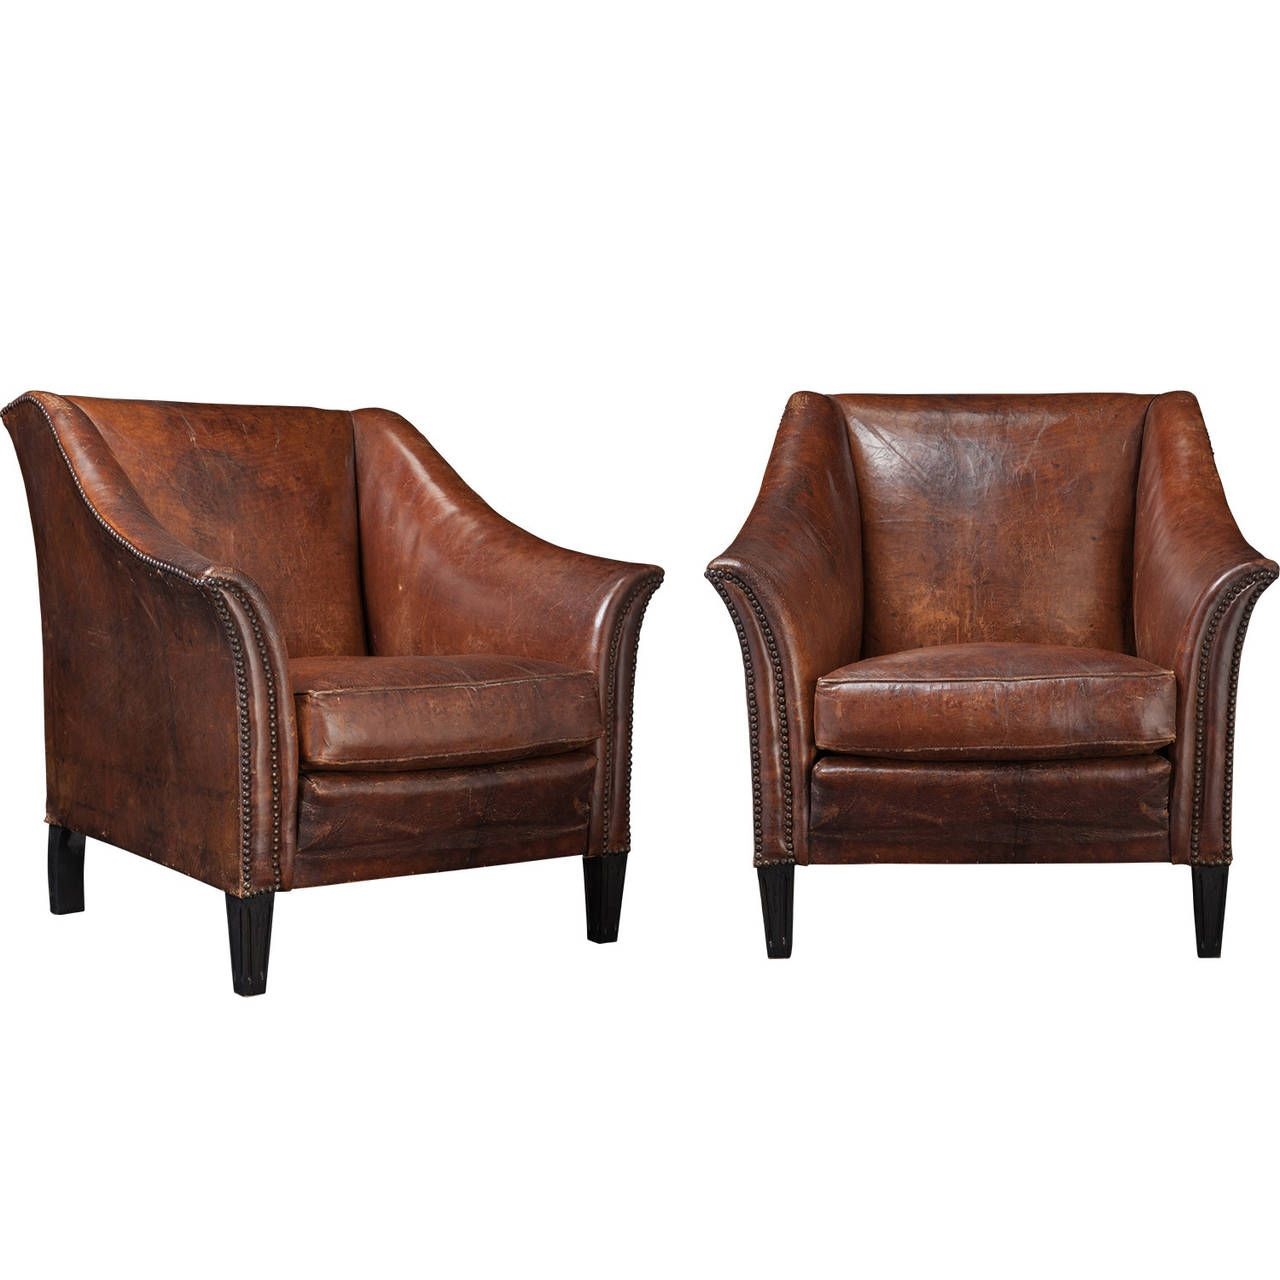 Best Pair Of Leather Club Chairs Ideas For The House In 2019 640 x 480